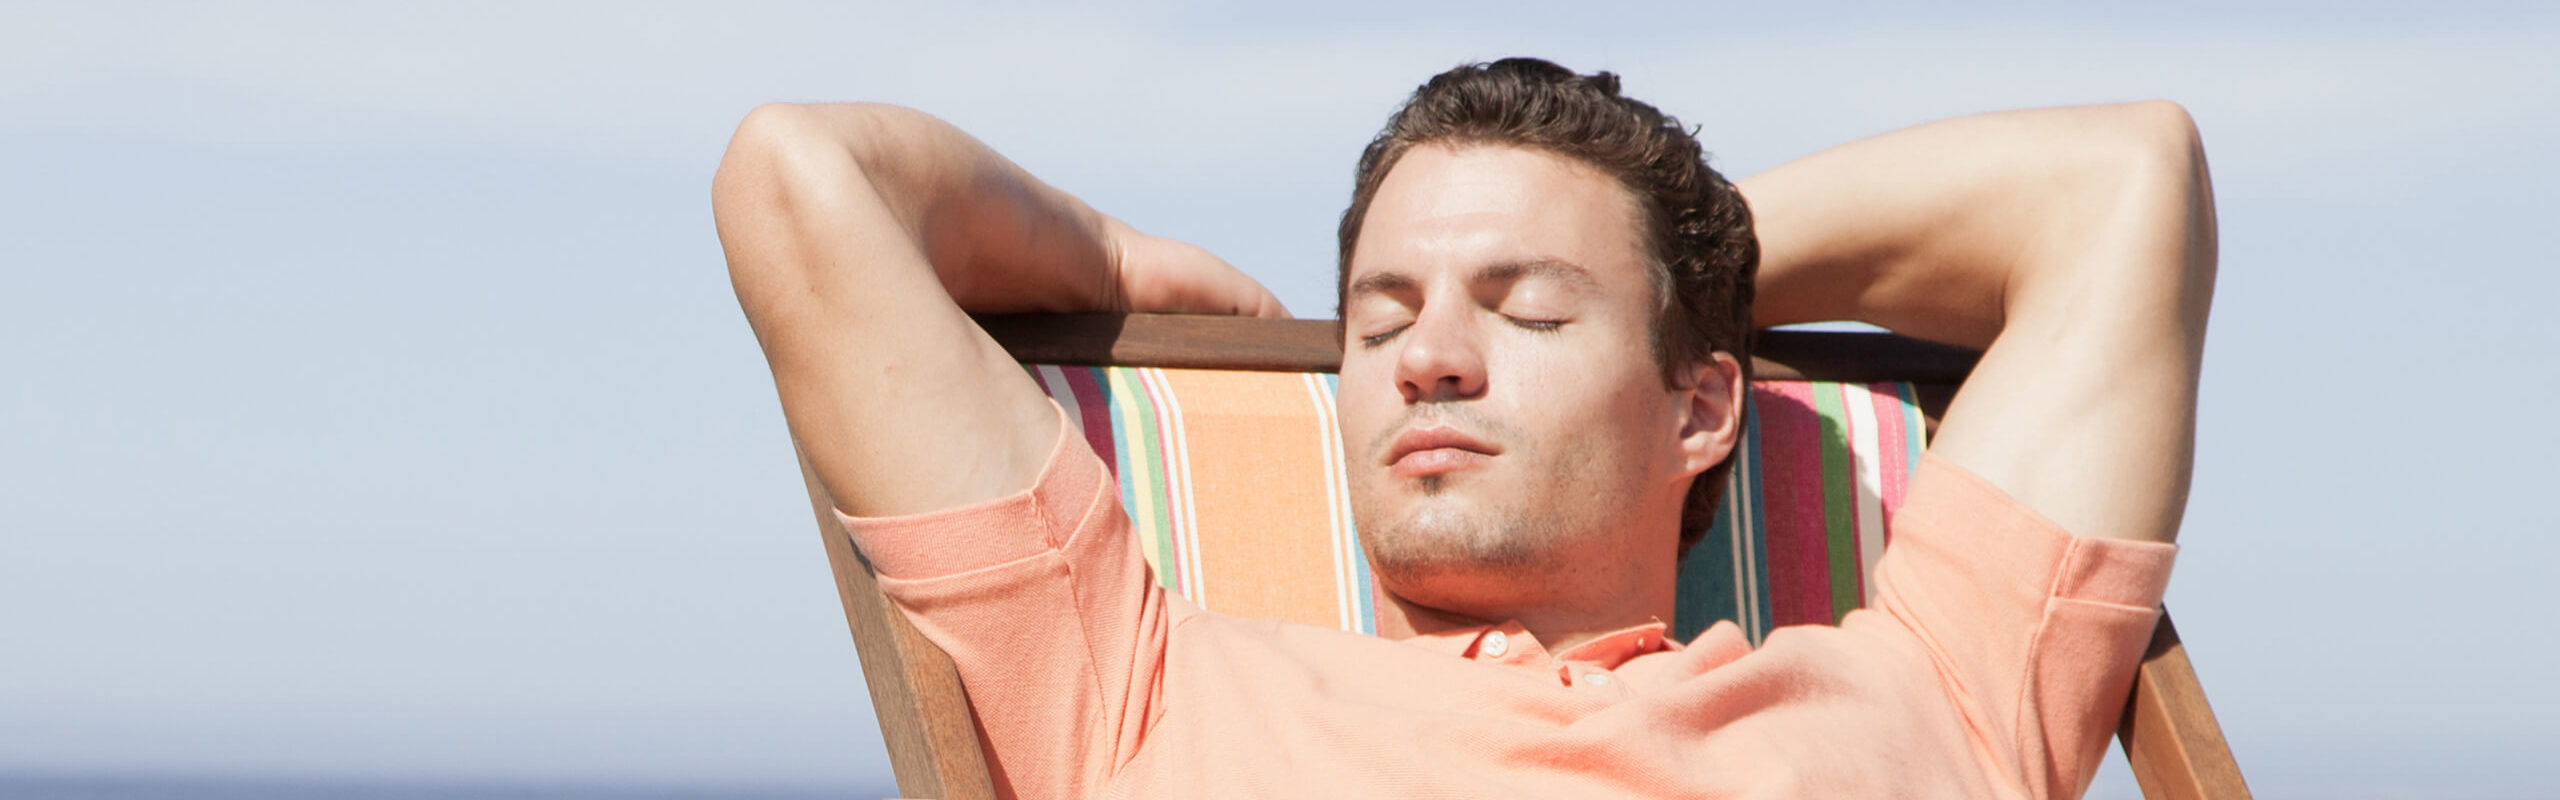 man relaxing with eyes closed in a beach chair